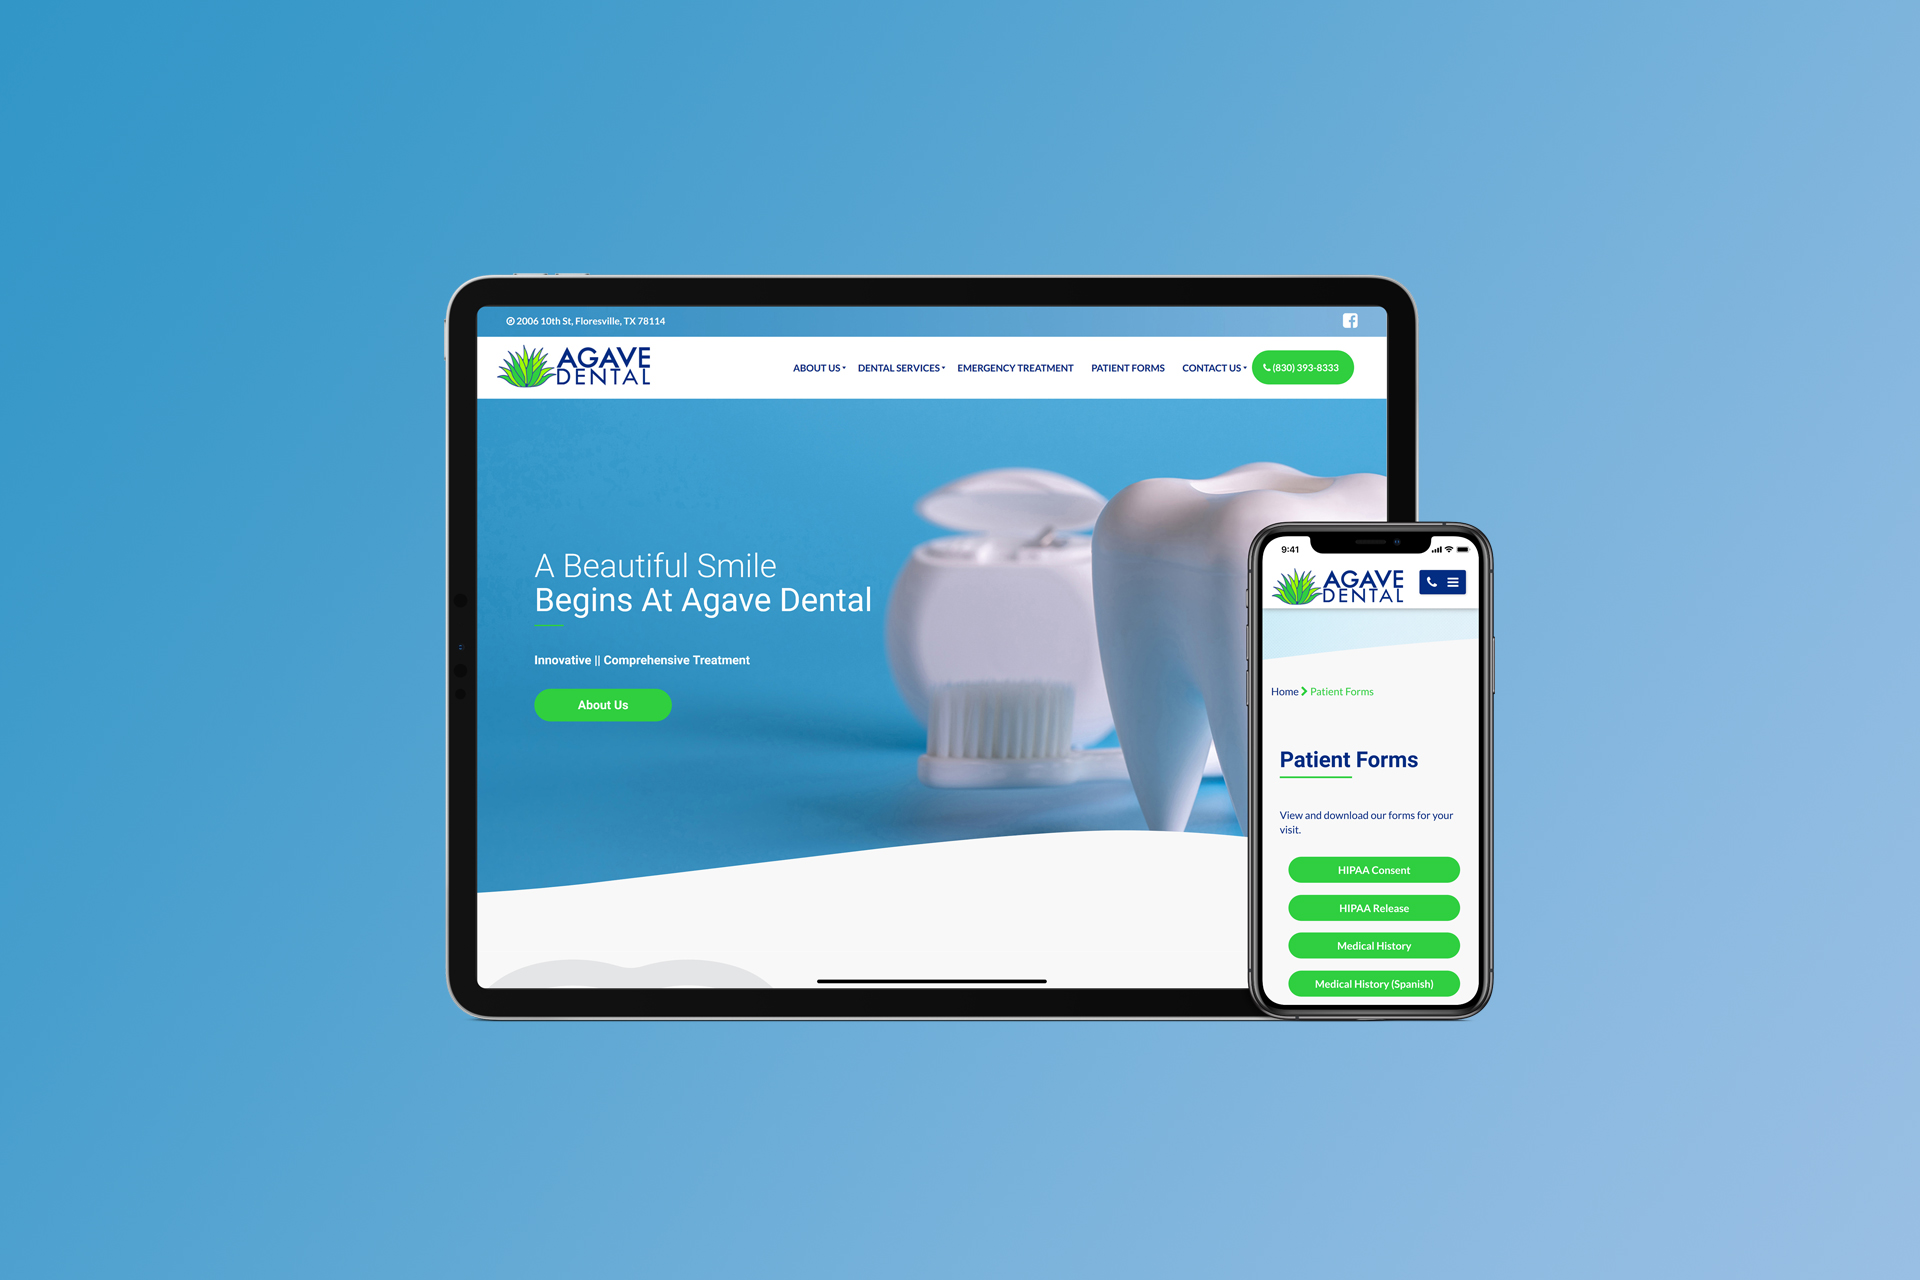 Agave Dental mobile website screenshots on iPhone and iPad